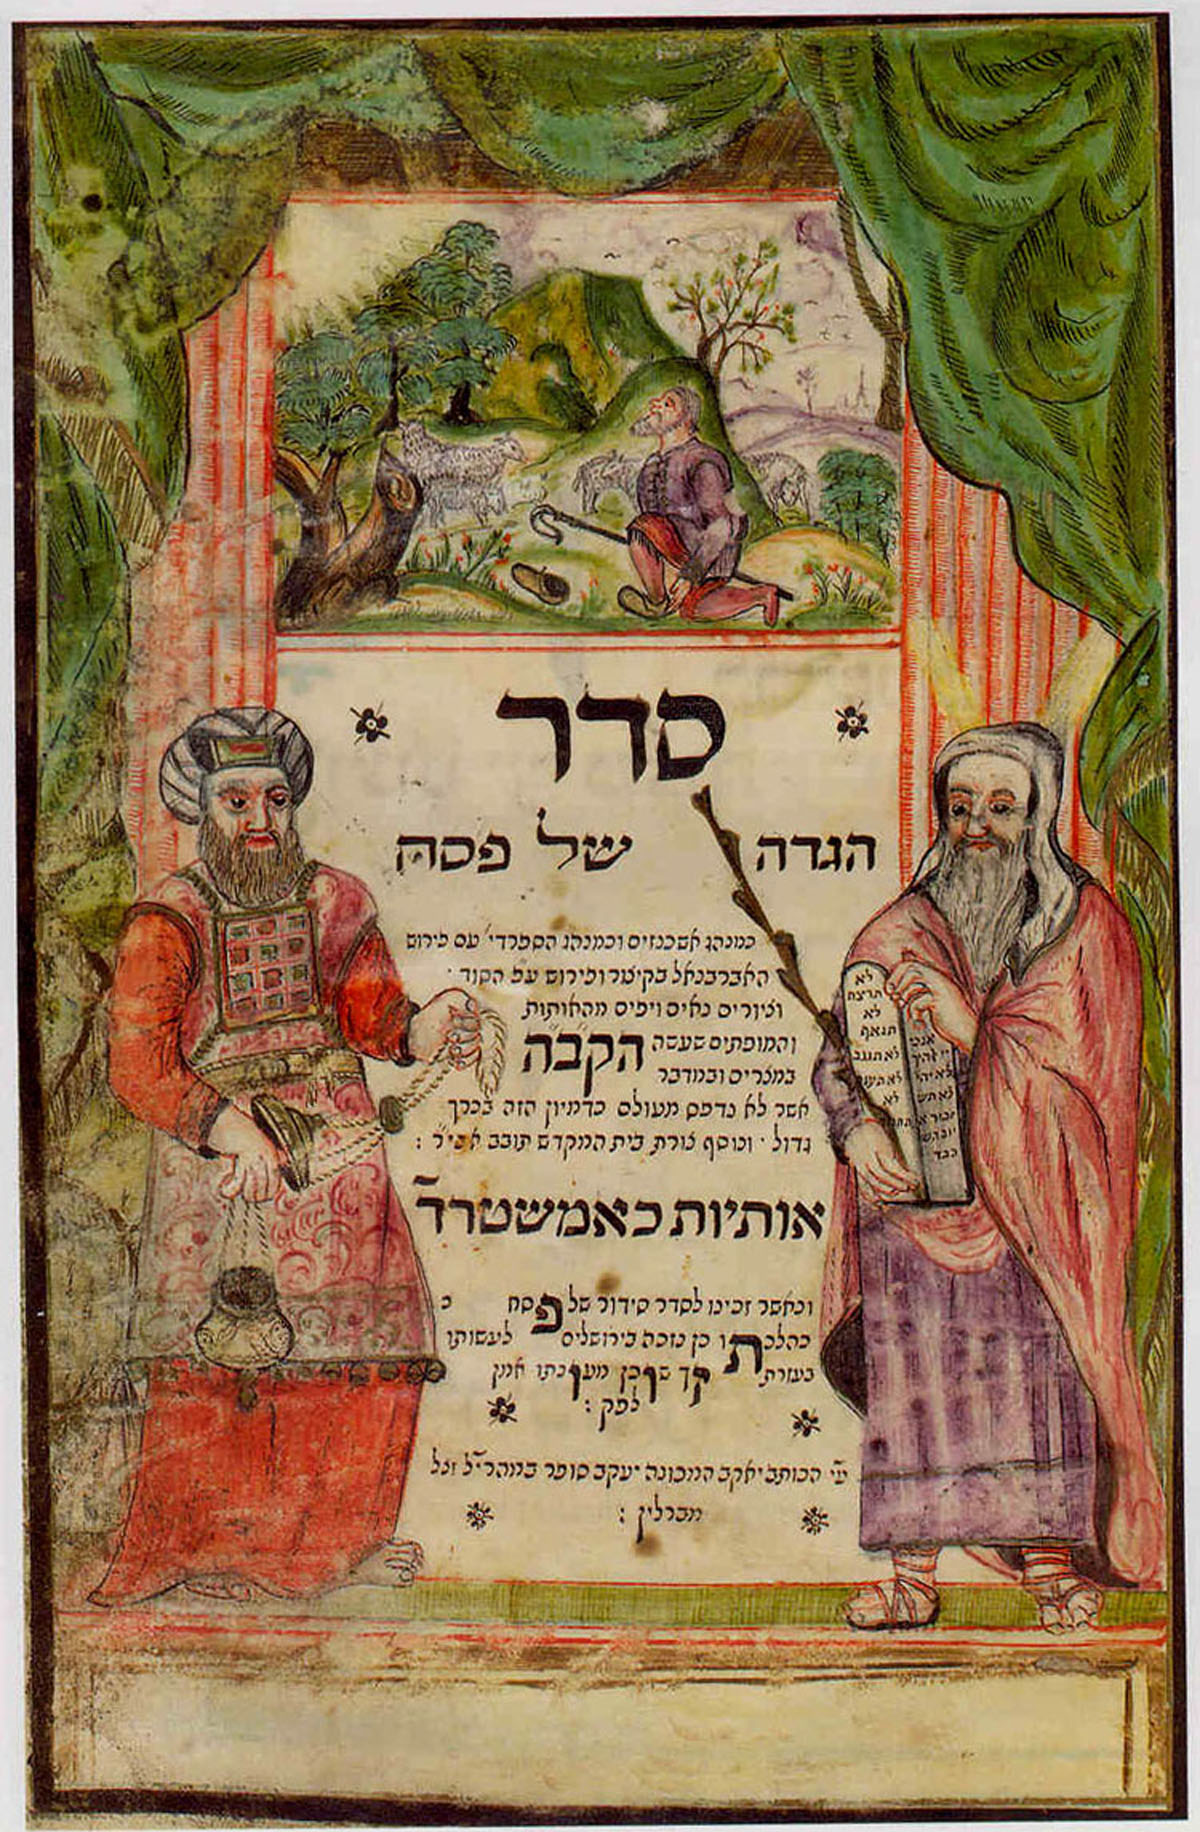 Title Page from Haggadah (1739) Scribe/Illuminator Yakov ben Yehudah Leib Shamash of Berlin Courtesy Sotheby's